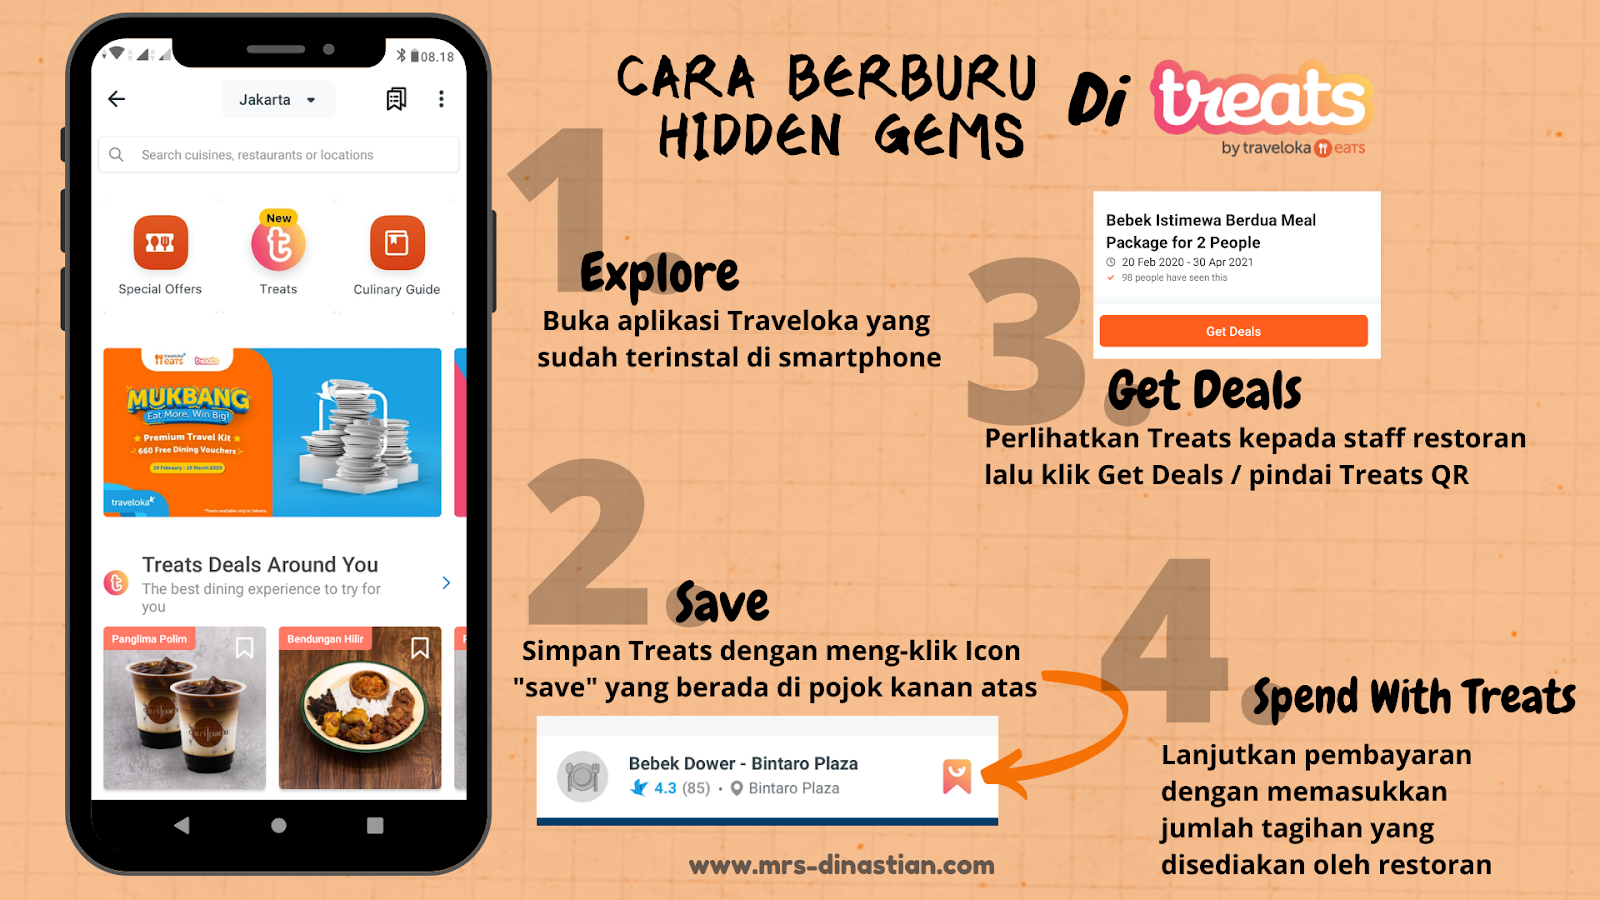 Cara Berburu Hidden Gems Treats By Traveloka Eats